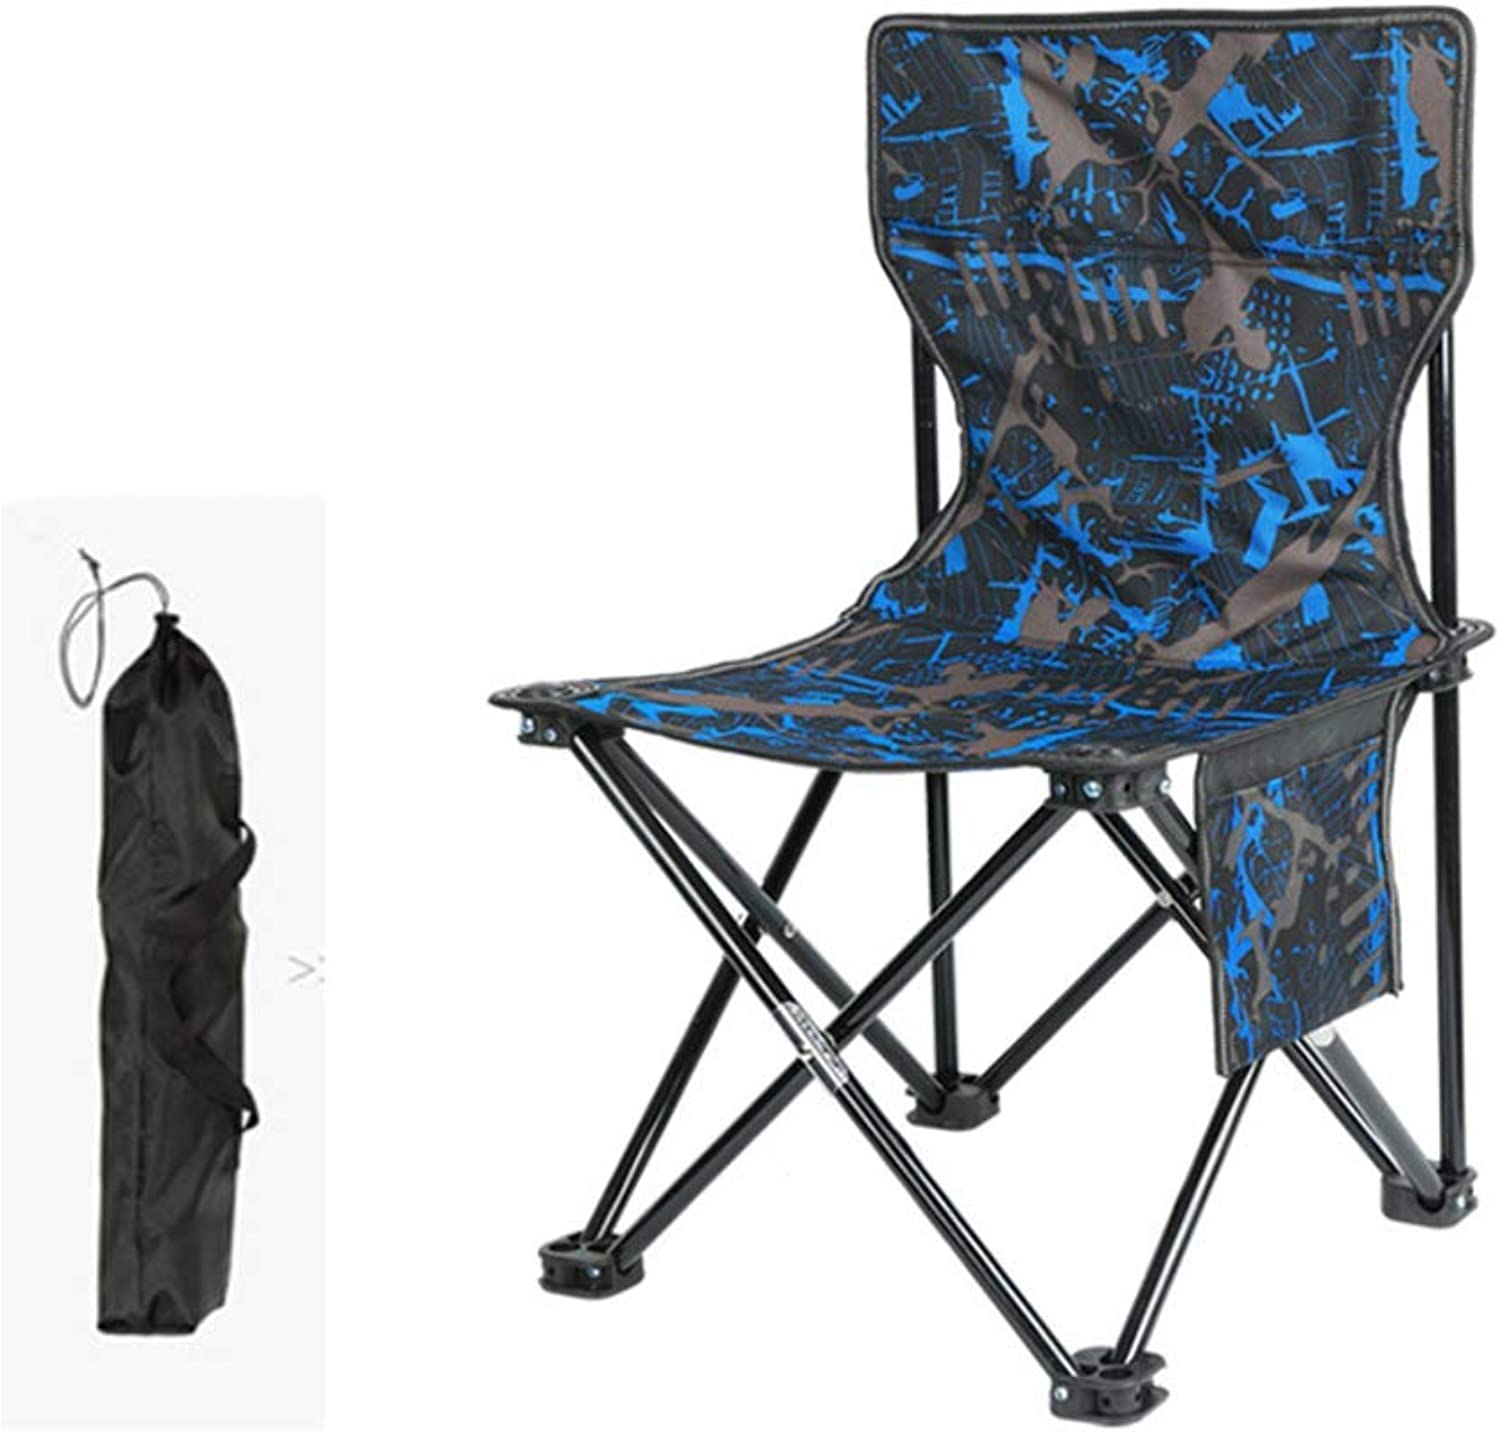 Outdoor Portable Camp Chair,Ultralight Folding Chairs,Breathable Camping Chair Perfect Hiking Fishing Campingblueee 52  33  33cm(20  13  13in)